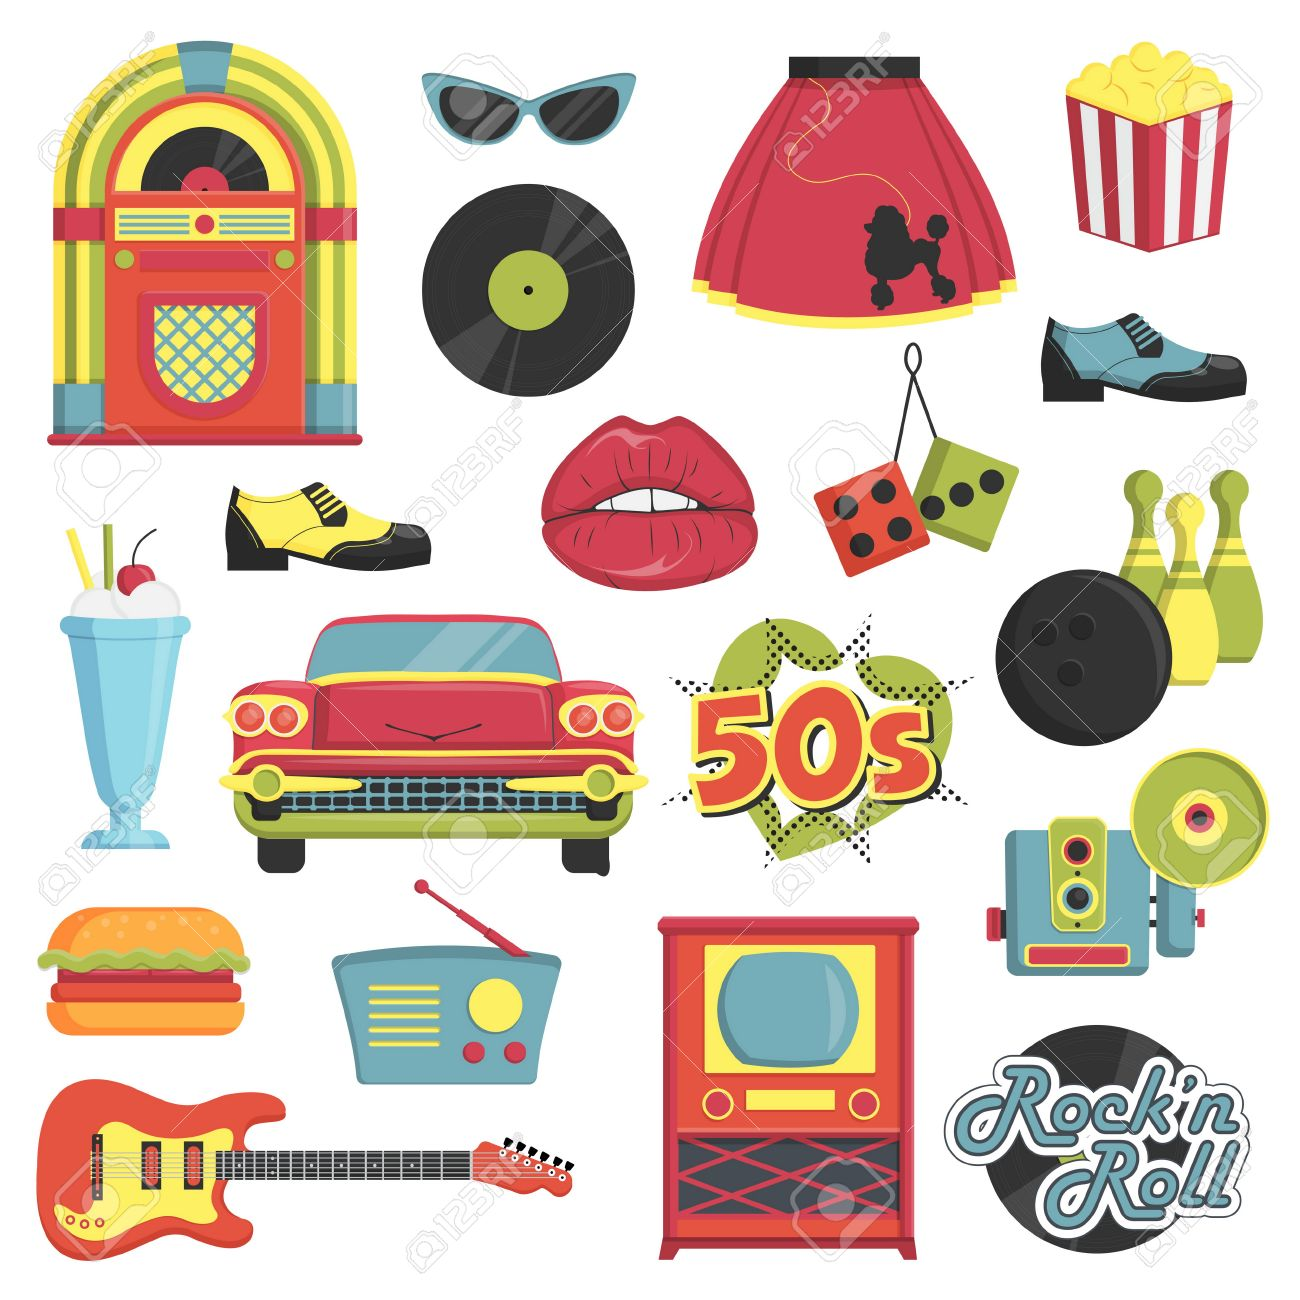 Collection of vintage retro 1950s style items that symbolize the 50s decade fashion accessories, style attributes, leisure items and innovations. - 61879223